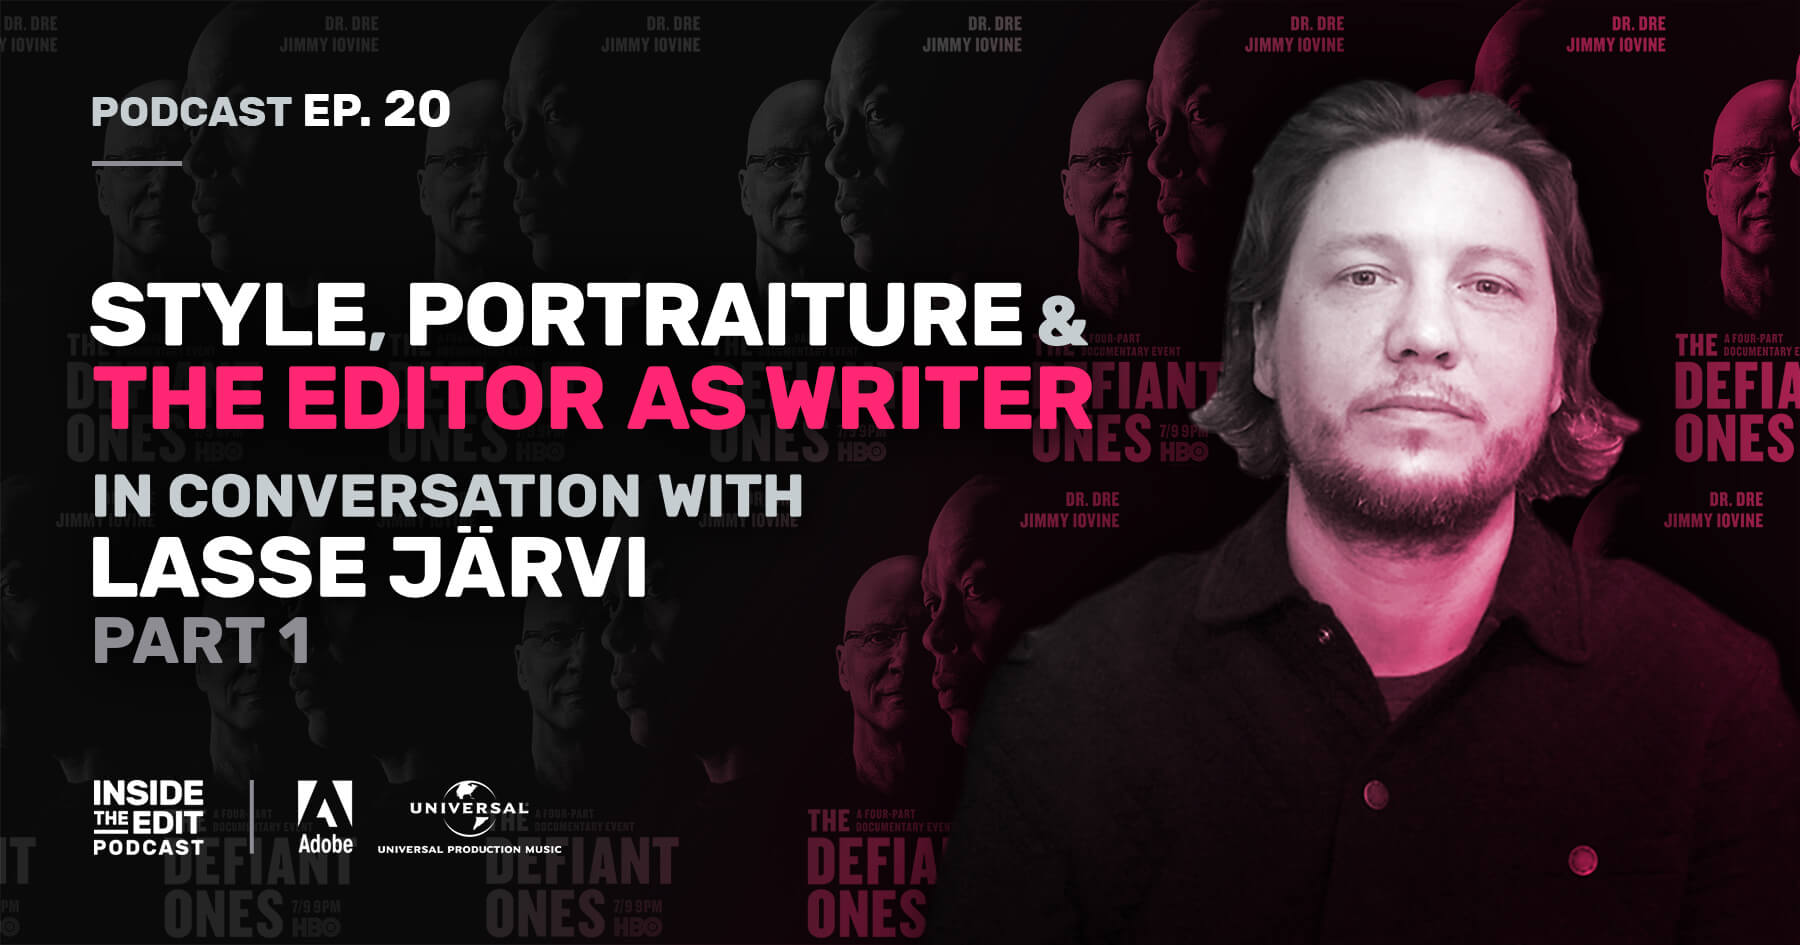 Style, Portraiture and the Editor as Writer: In Conversation With Lasse Järvi Part 1